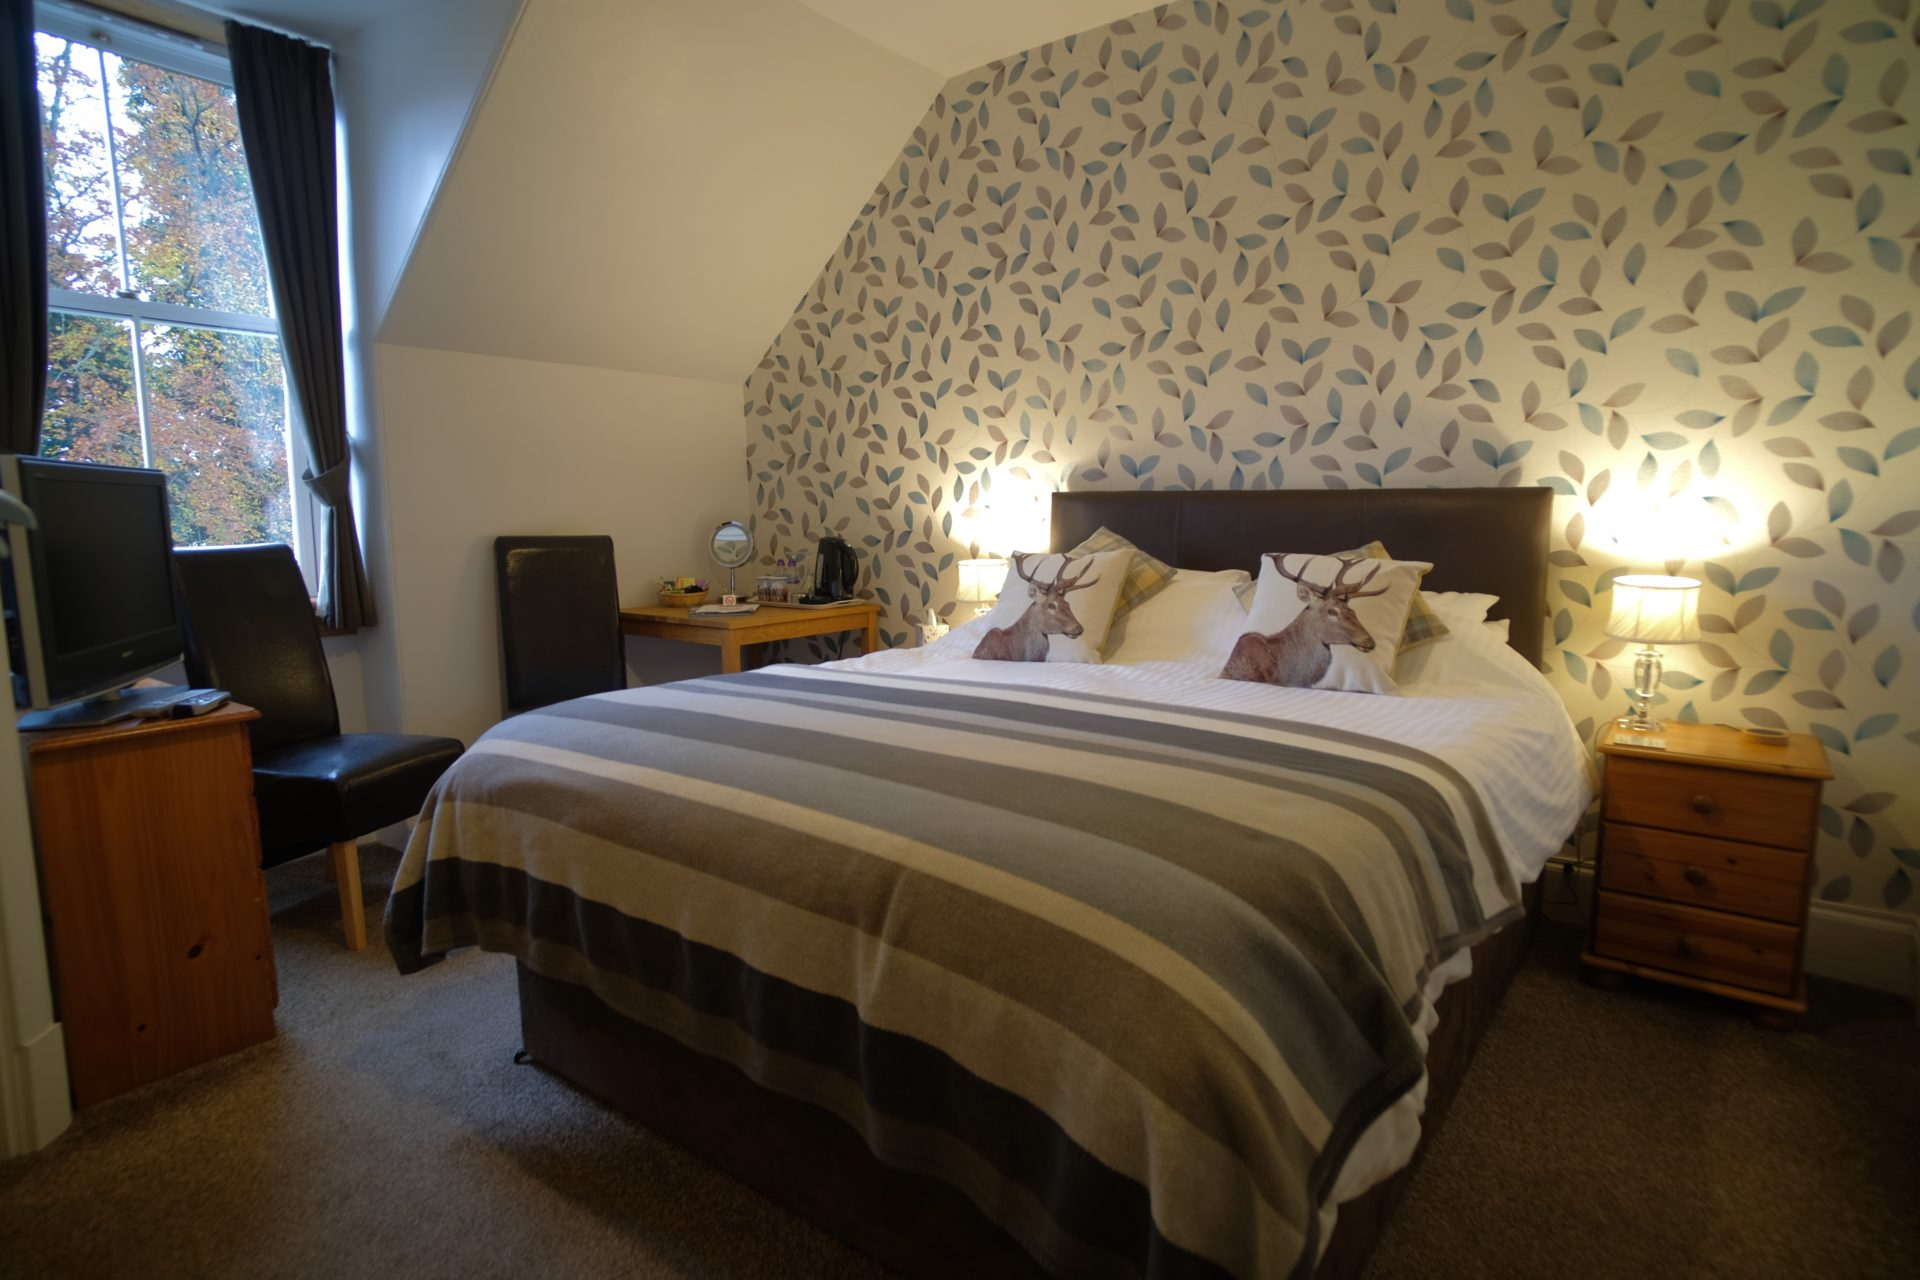 Full view of the Great Glen Double Bedroom with Kingsize Bed